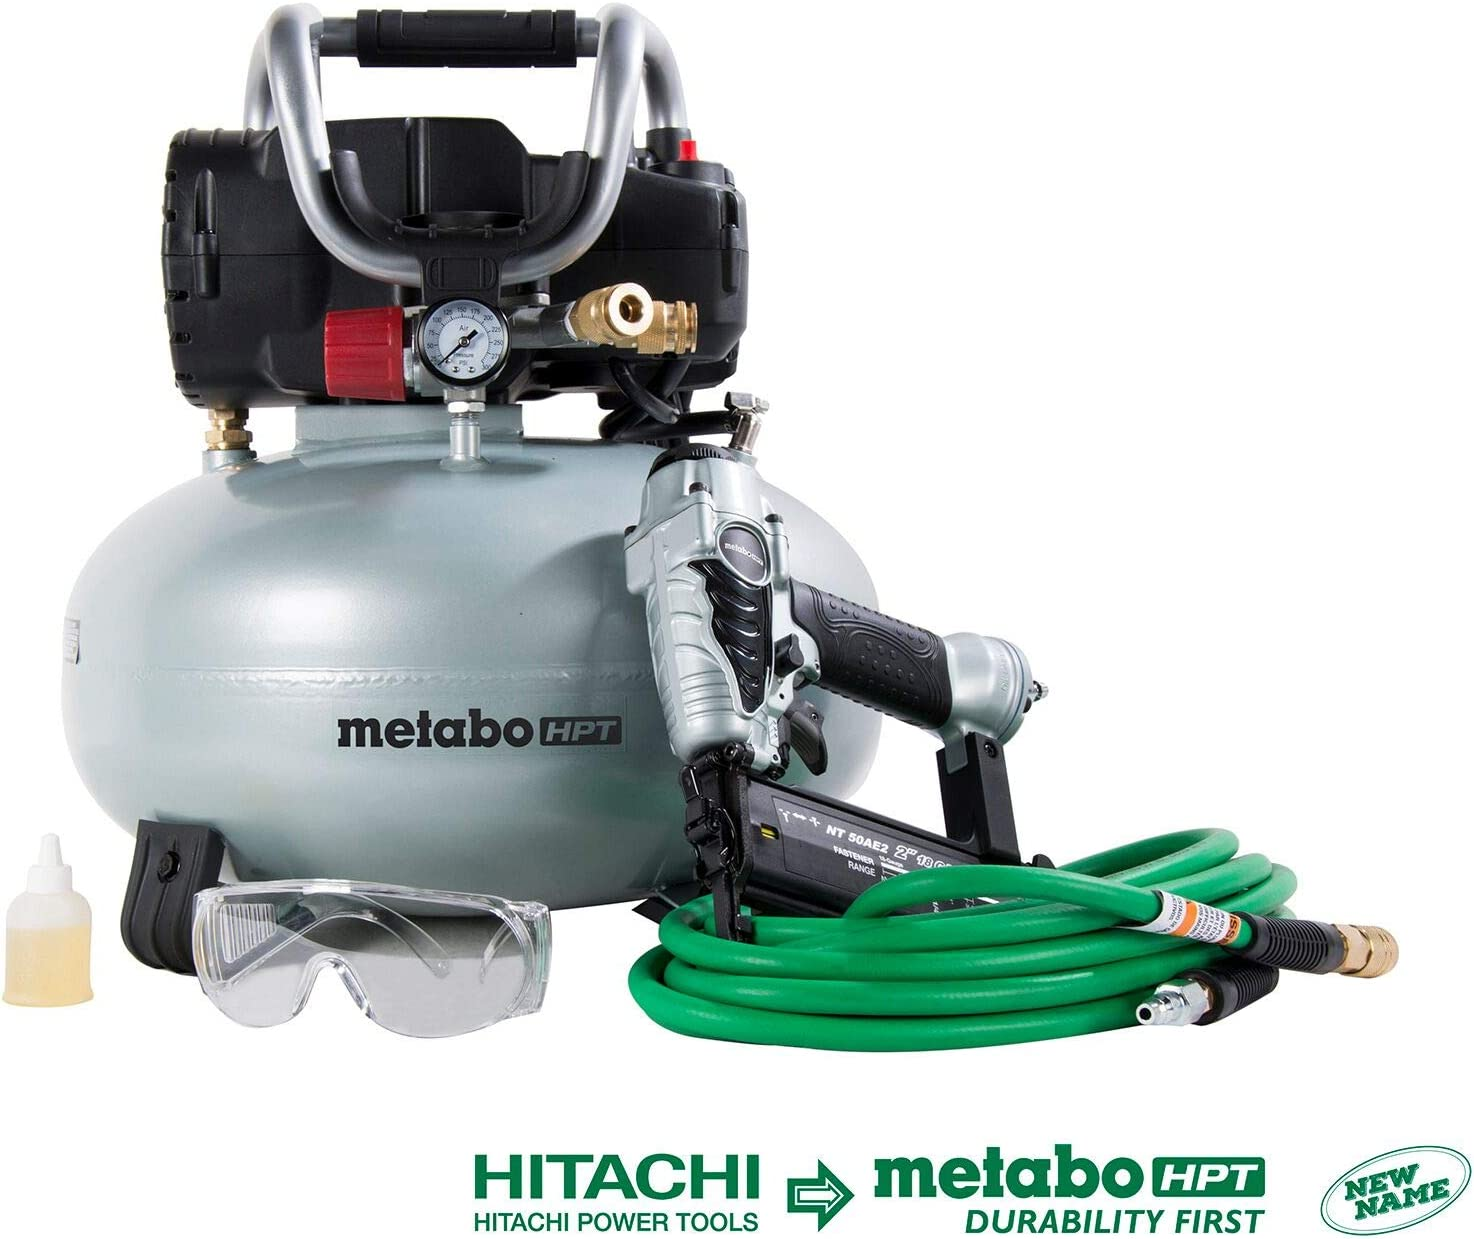 3.      Metabo HPT KNT50AB Brad Nailer & Portable Air Compressor